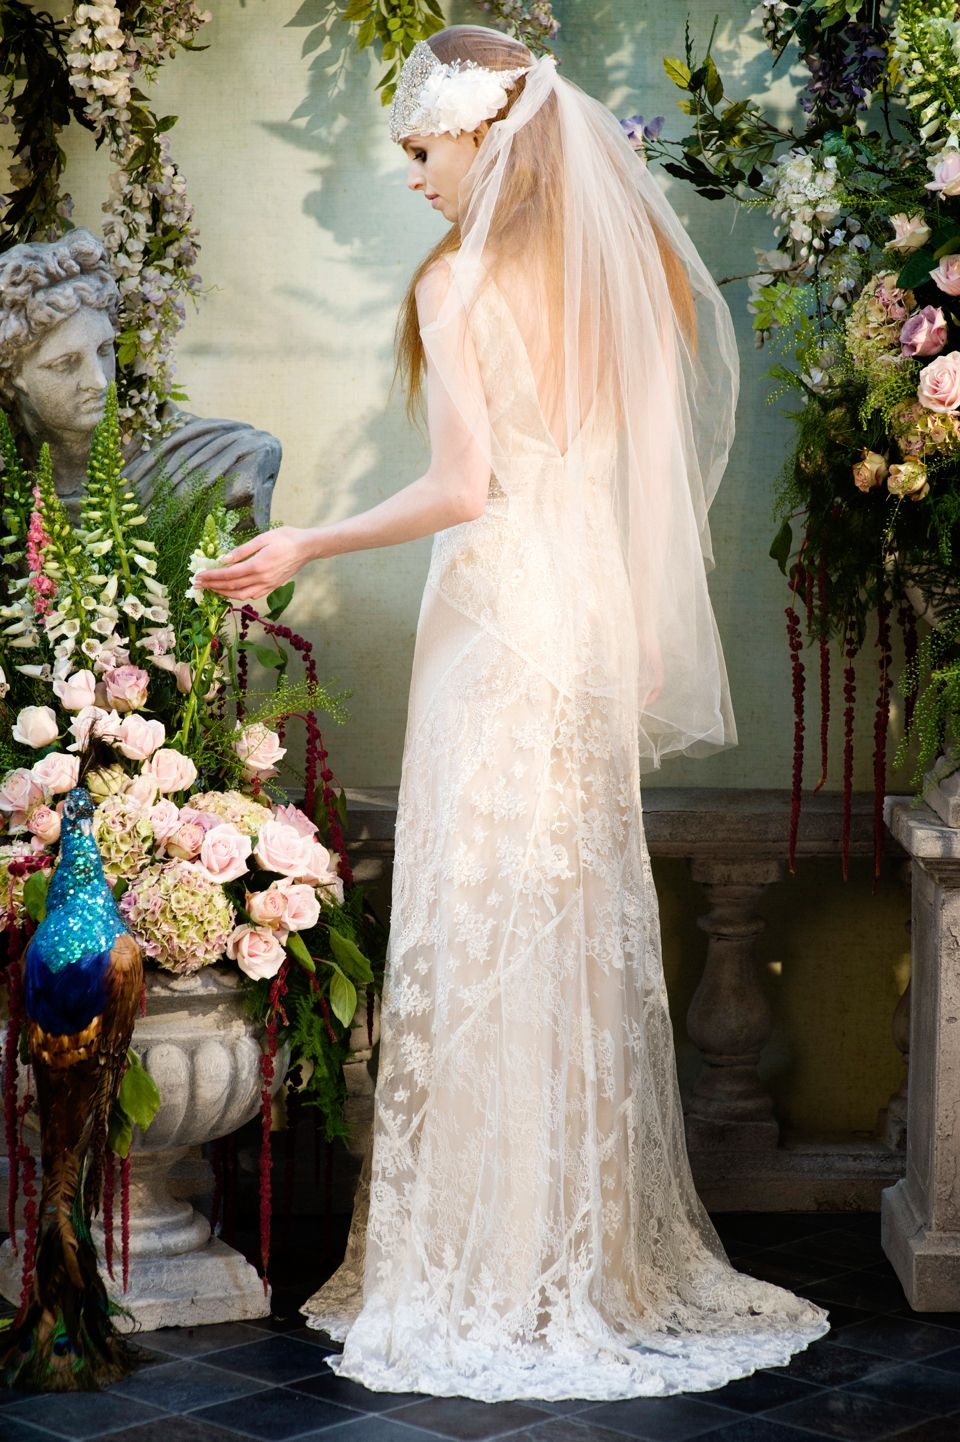 Siren Song ~ The New Collection By Terry Fox Inspired By Fairytales ...